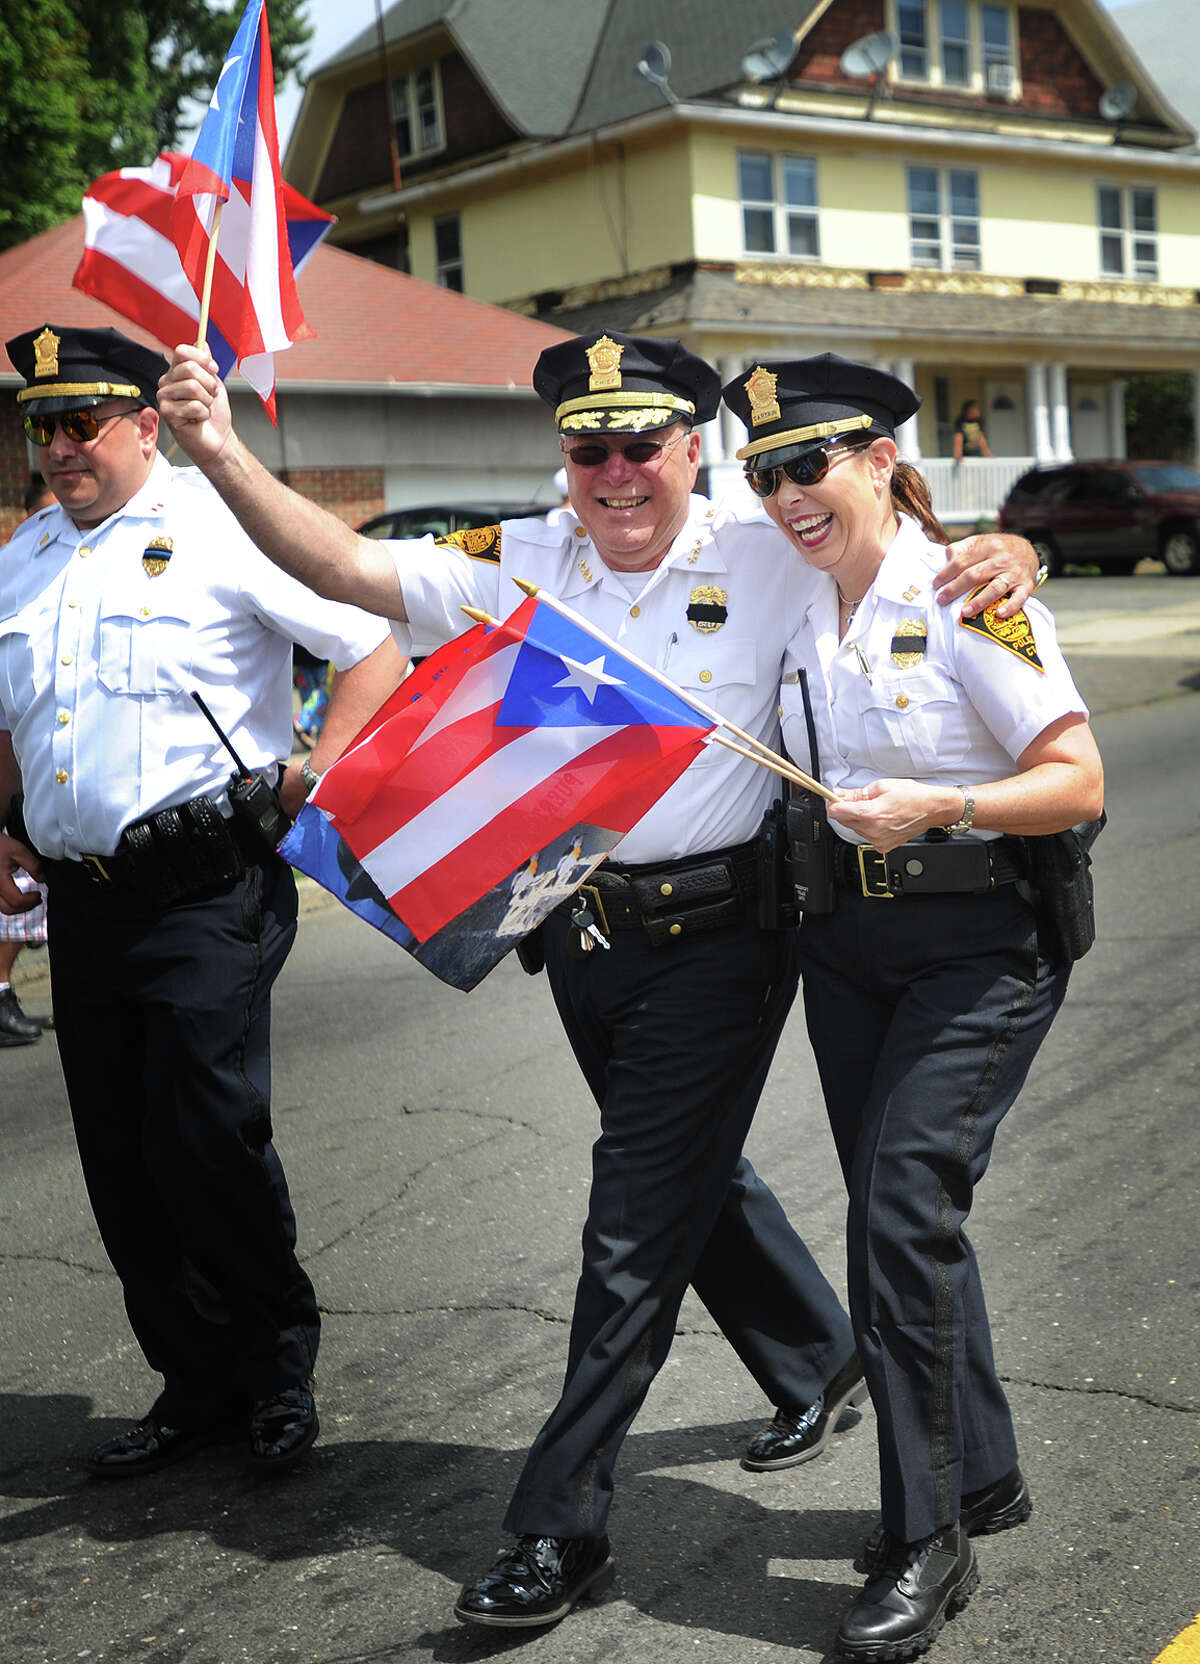 Bridgeport Police Chief A.J. Perez waves the Puerto Rican flag with Captain Rebecca Garcia as they march in the annual Puerto Rican Day Parade on North Avenue in Bridgeport, Conn. on Sunday, July 10, 2016.